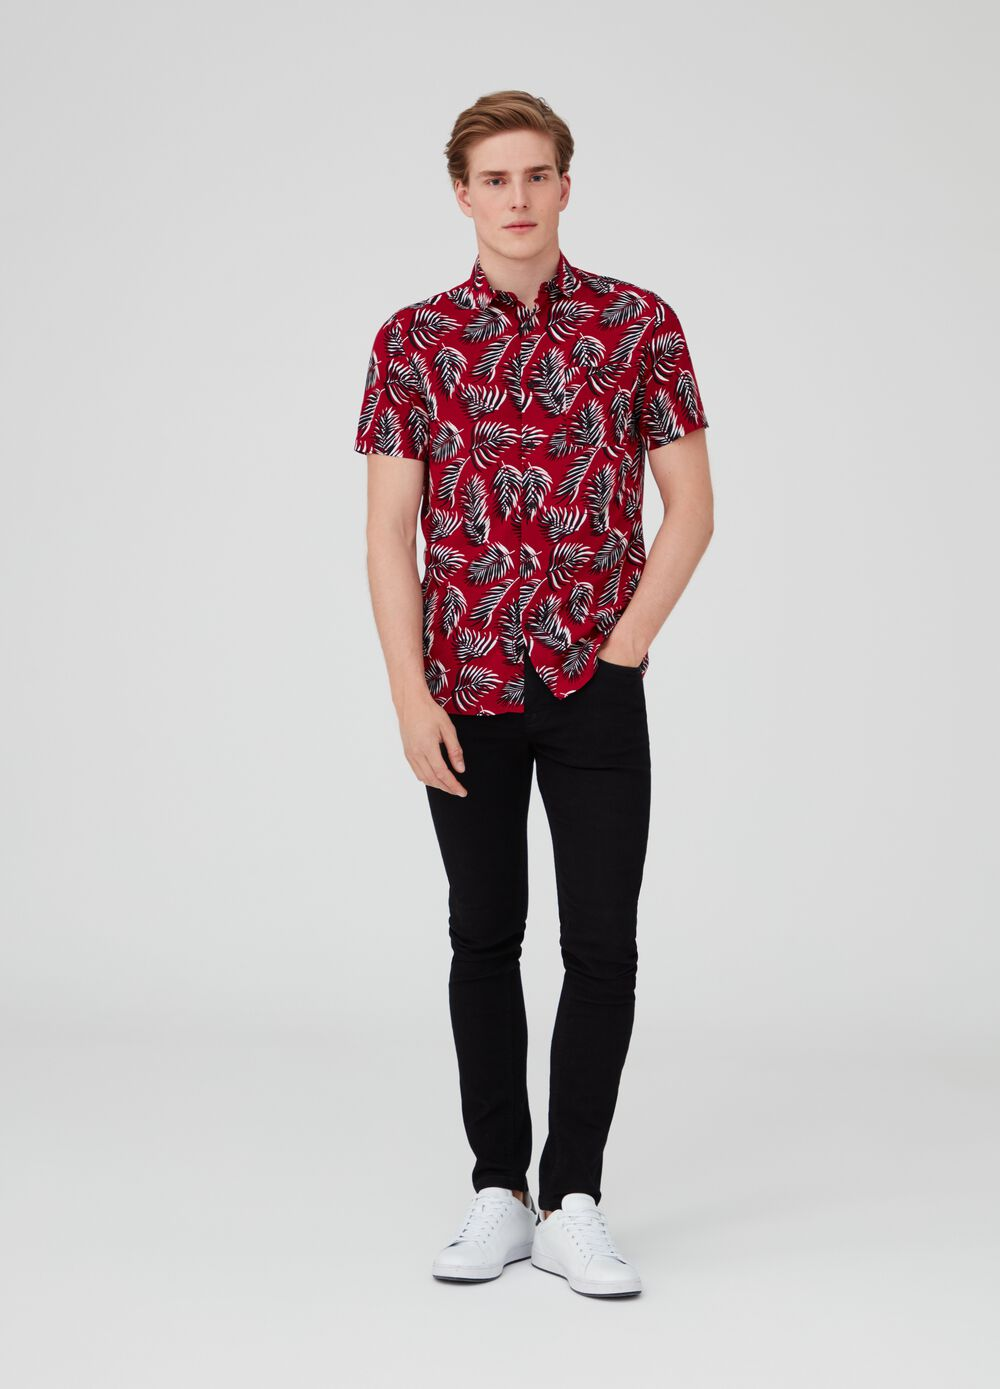 Viscose foliage shirt with short sleeves